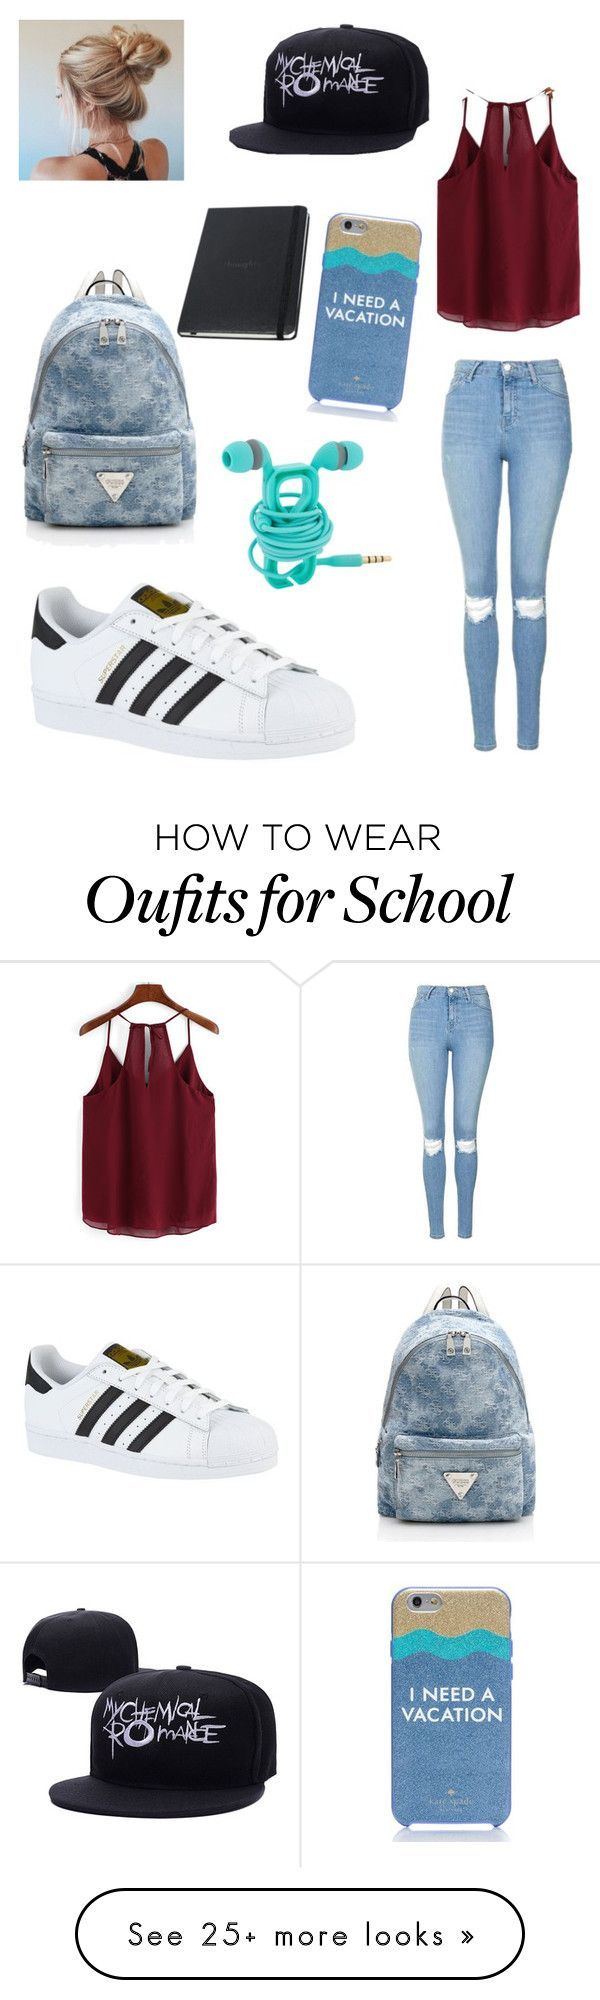 """School"" by asexualkilljoy on Polyvore featuring Topshop, adidas and Kate Spade"